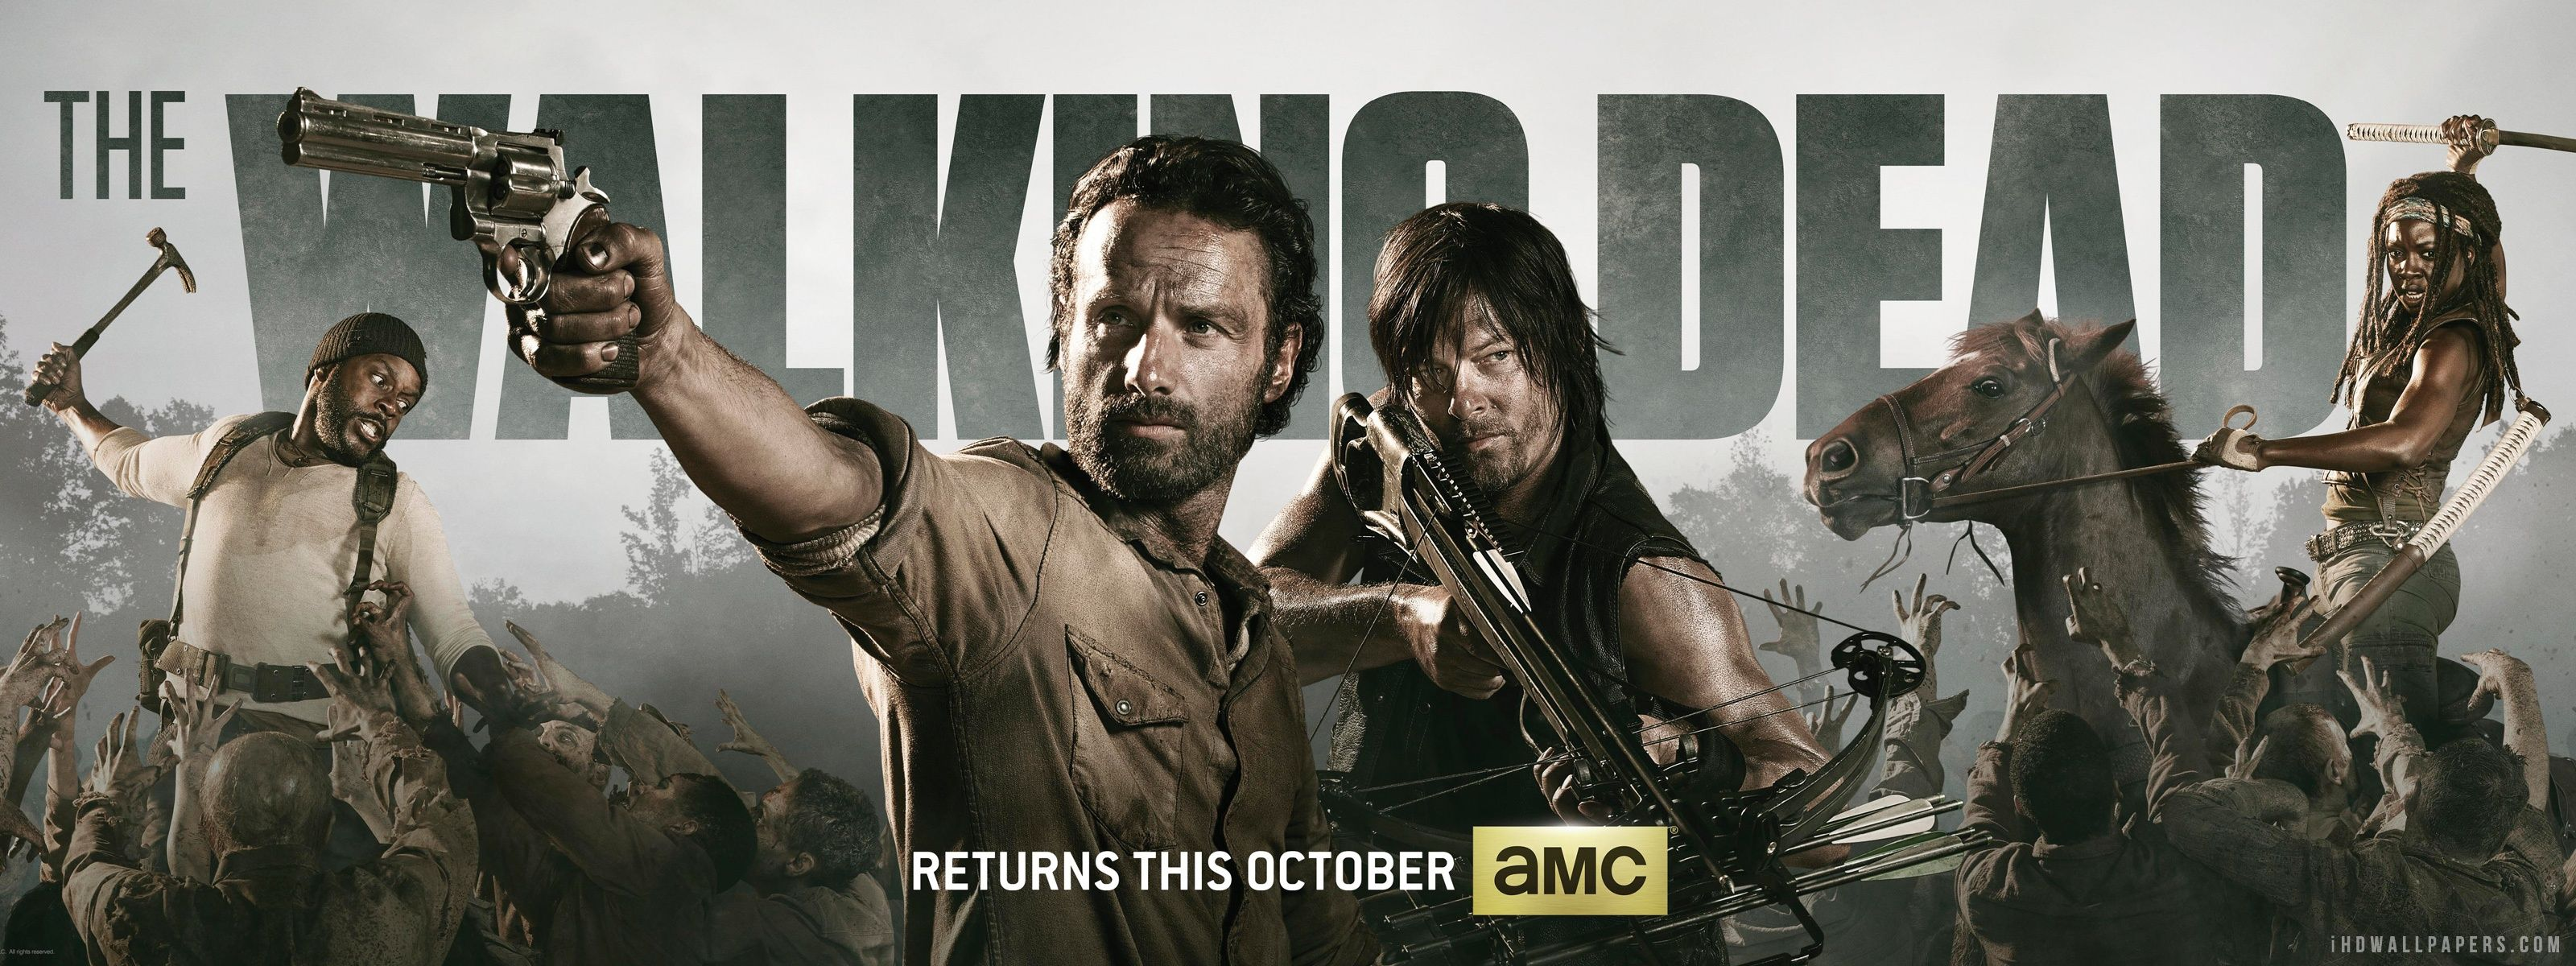 The walking dead season 4 gets underway in the states on amc from the walking dead season 4 gets underway in the states on amc from october 13th voltagebd Images